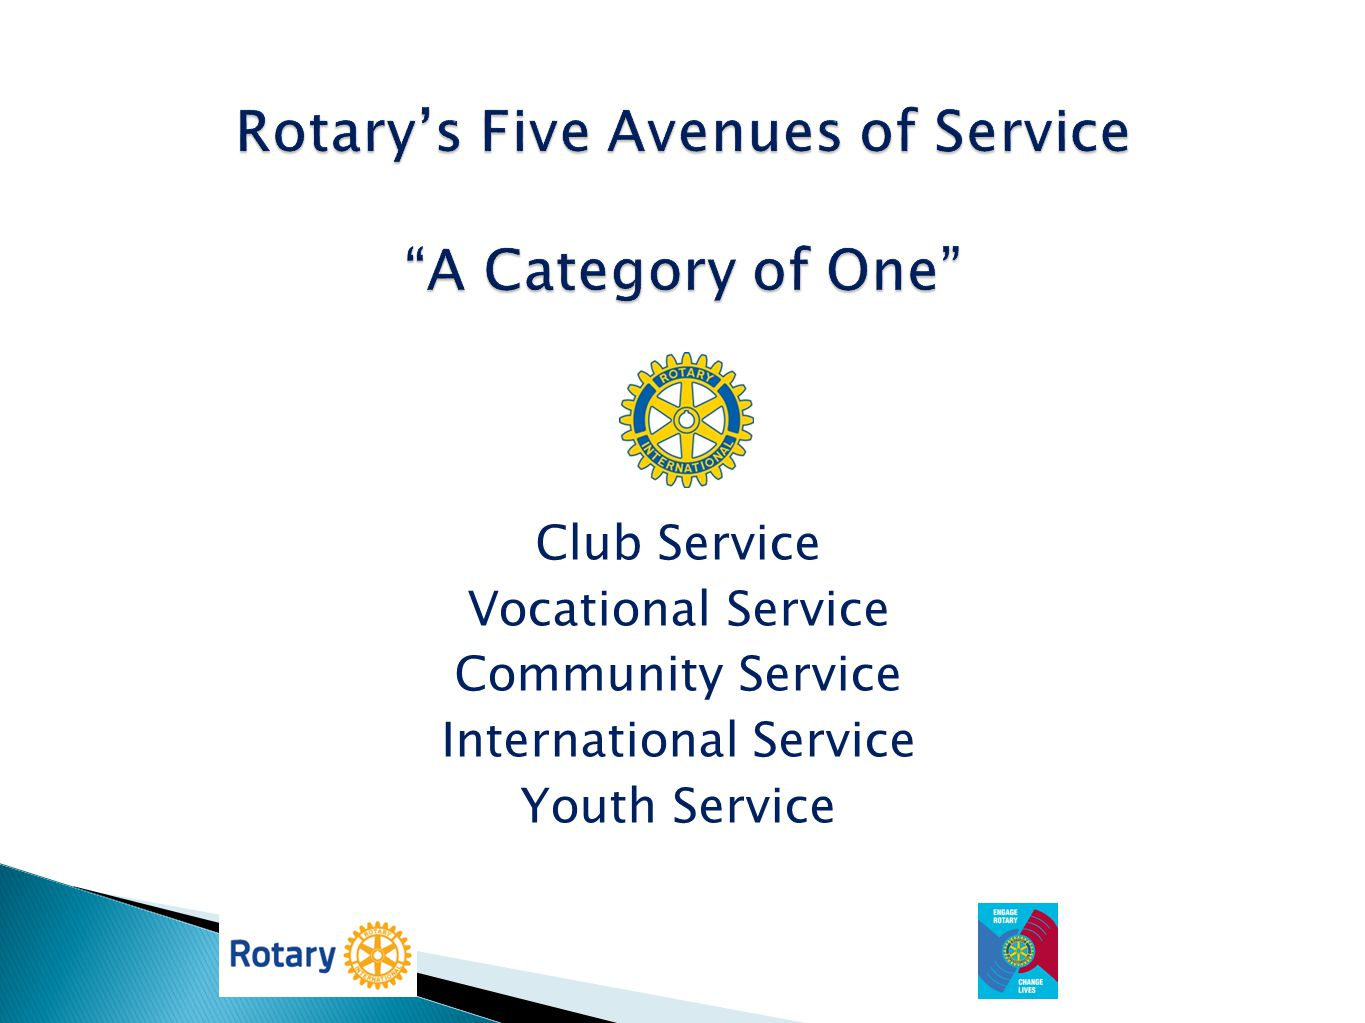 Rotary's Five Avenues of Service A Category of One